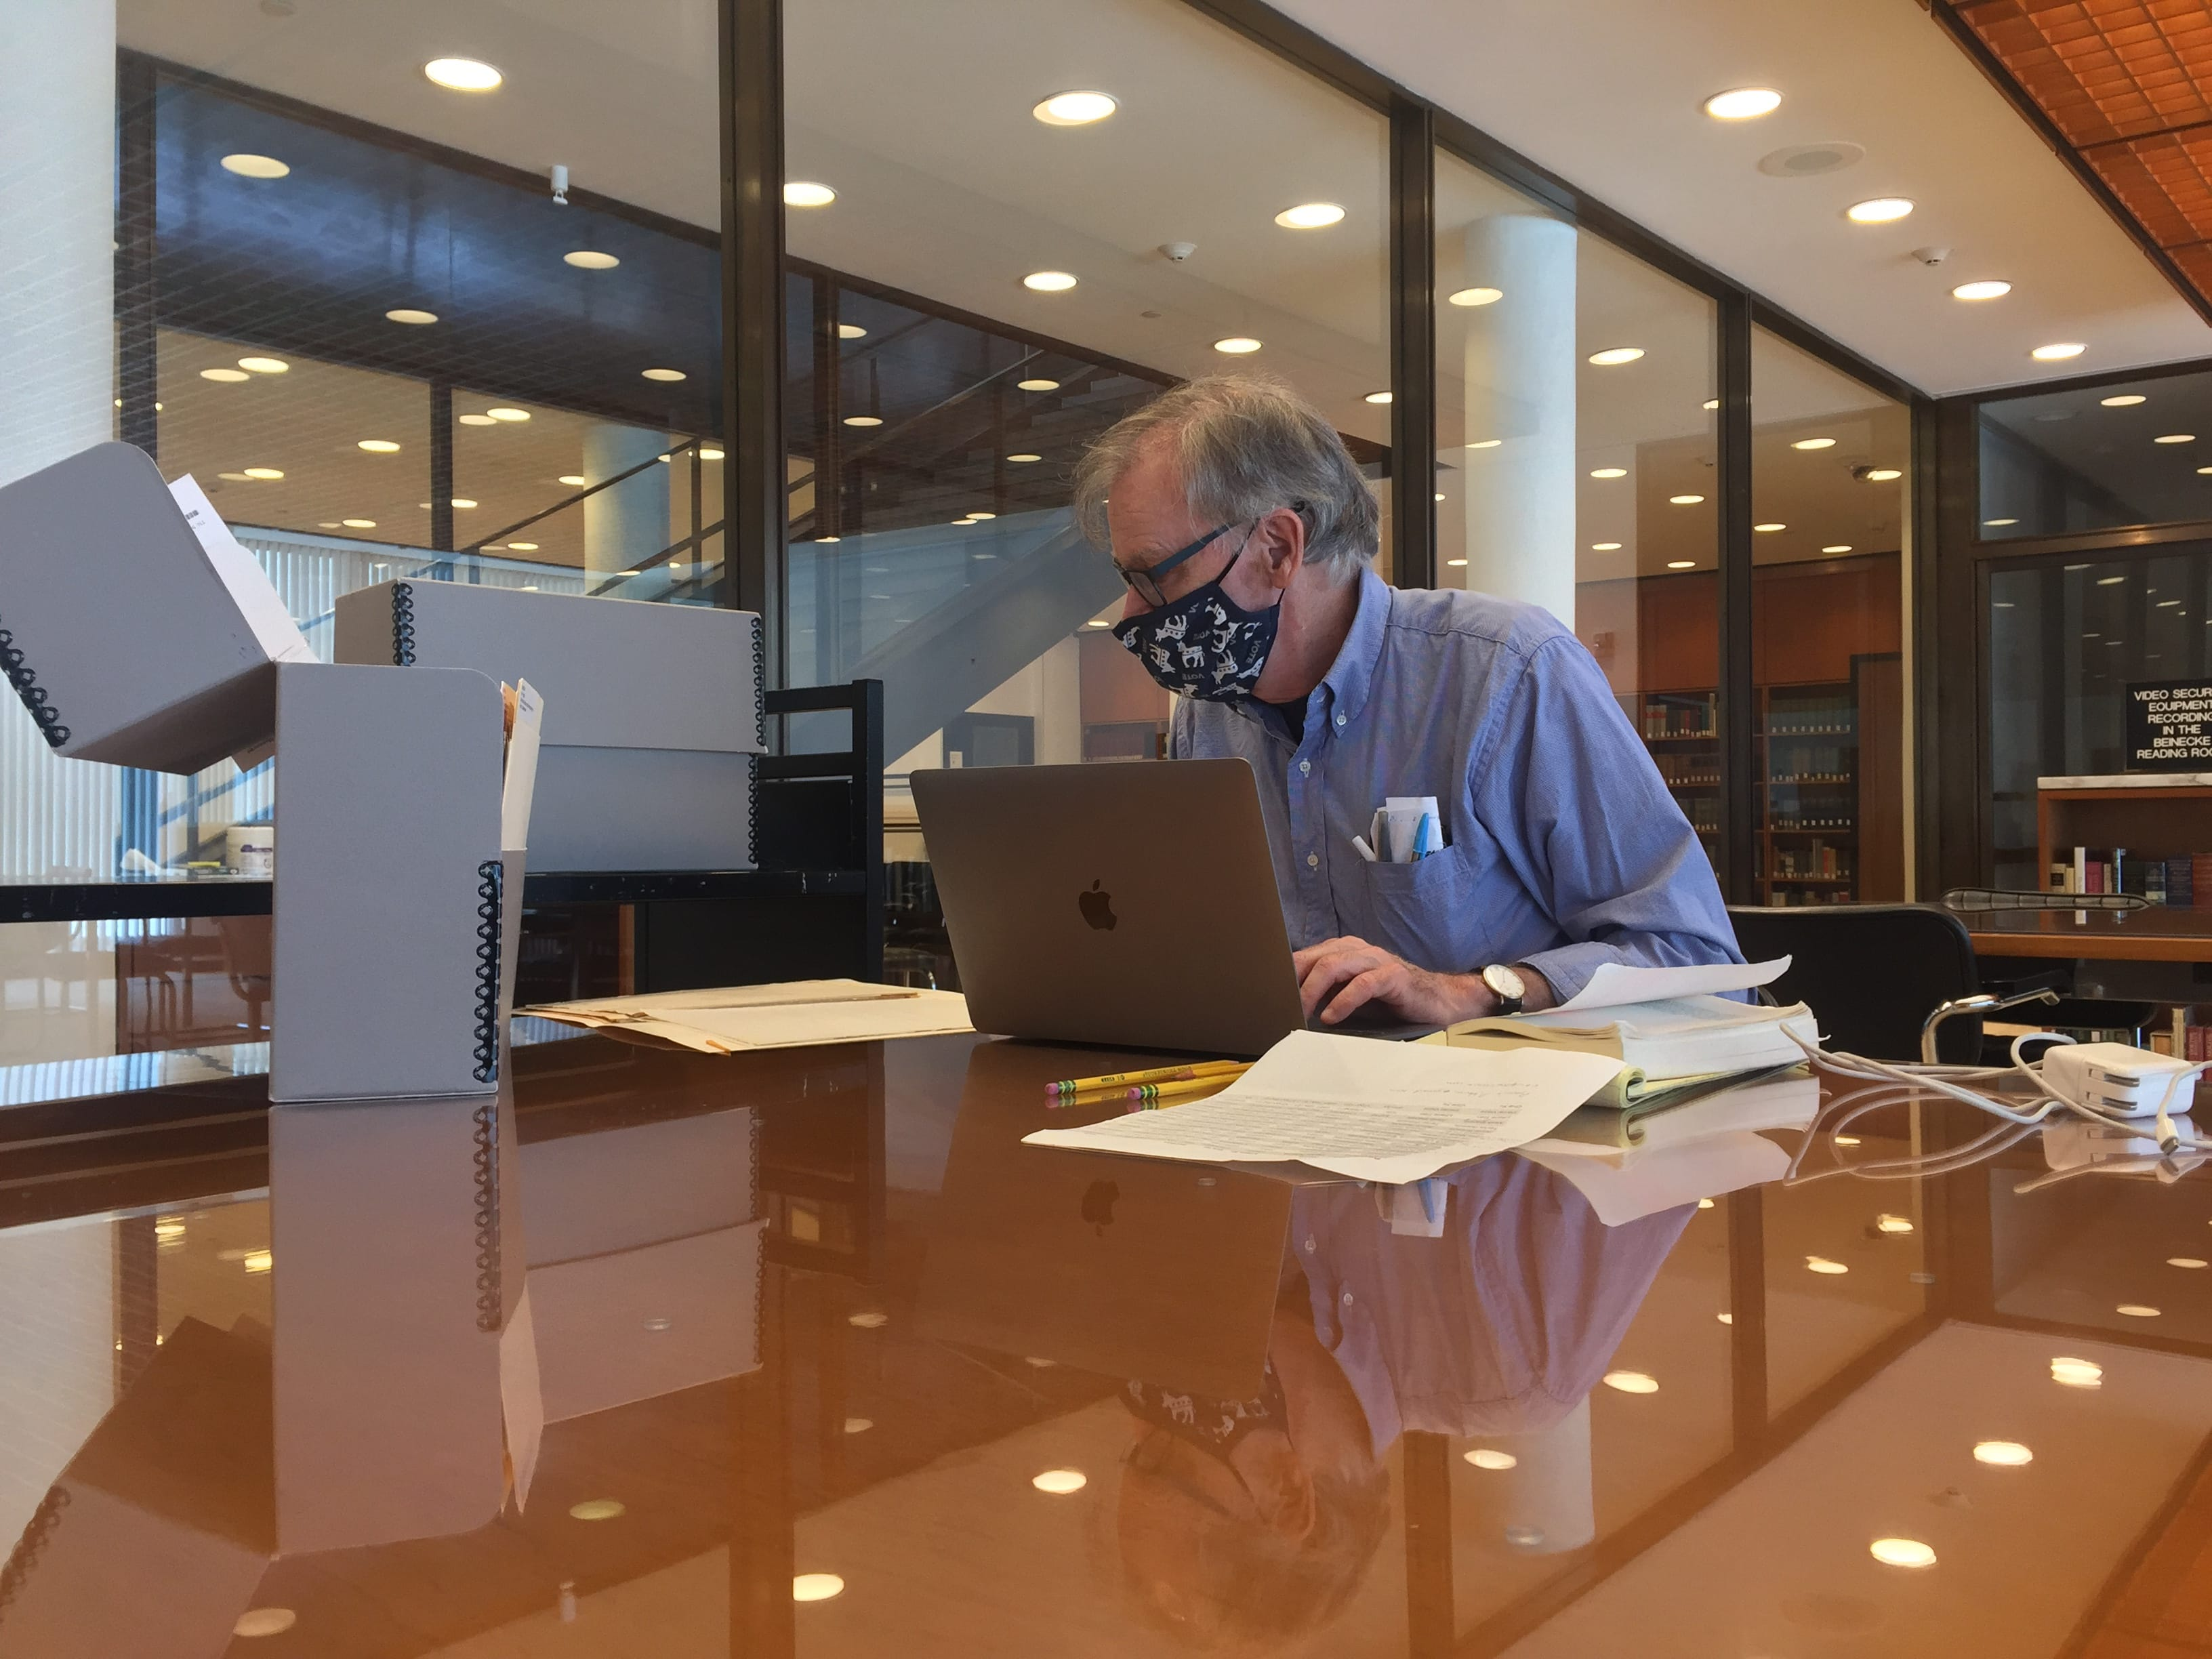 Masked Yale professor in the reading room with lap top and papers